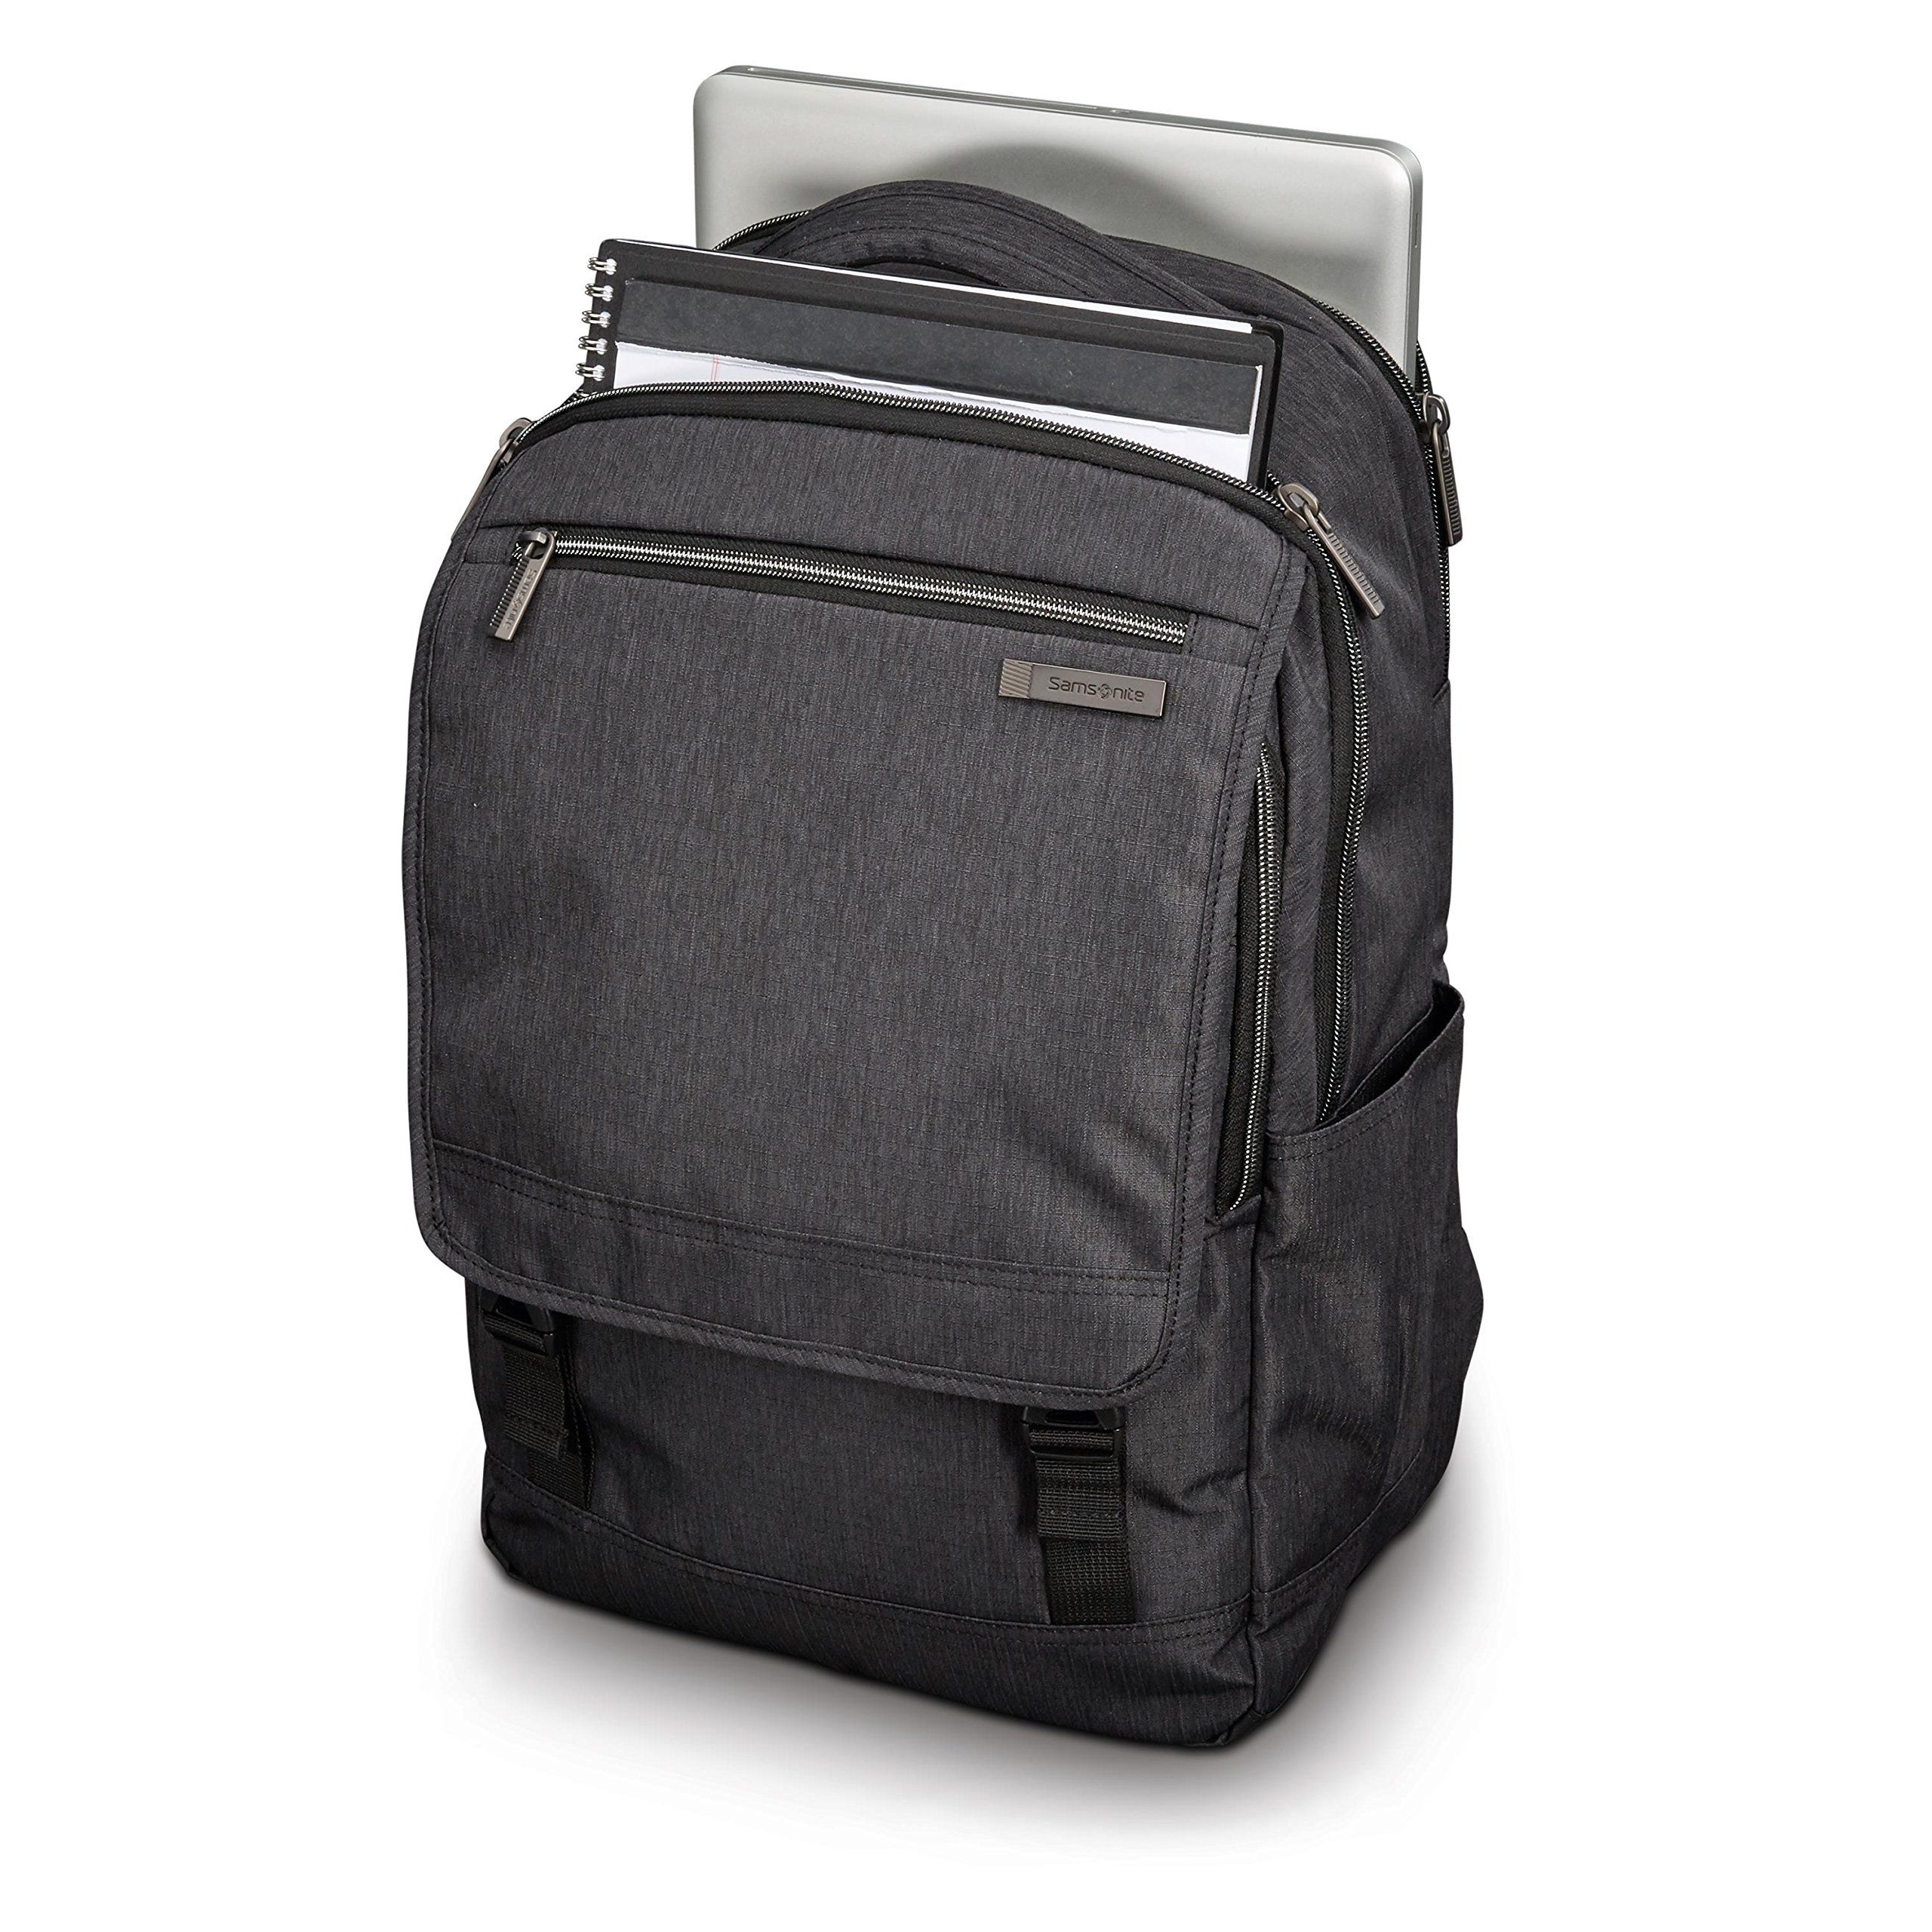 Samsonite Modern Utility Paracycle Backpack Laptop, Charcoal Heather, One Size by Samsonite (Image #4)